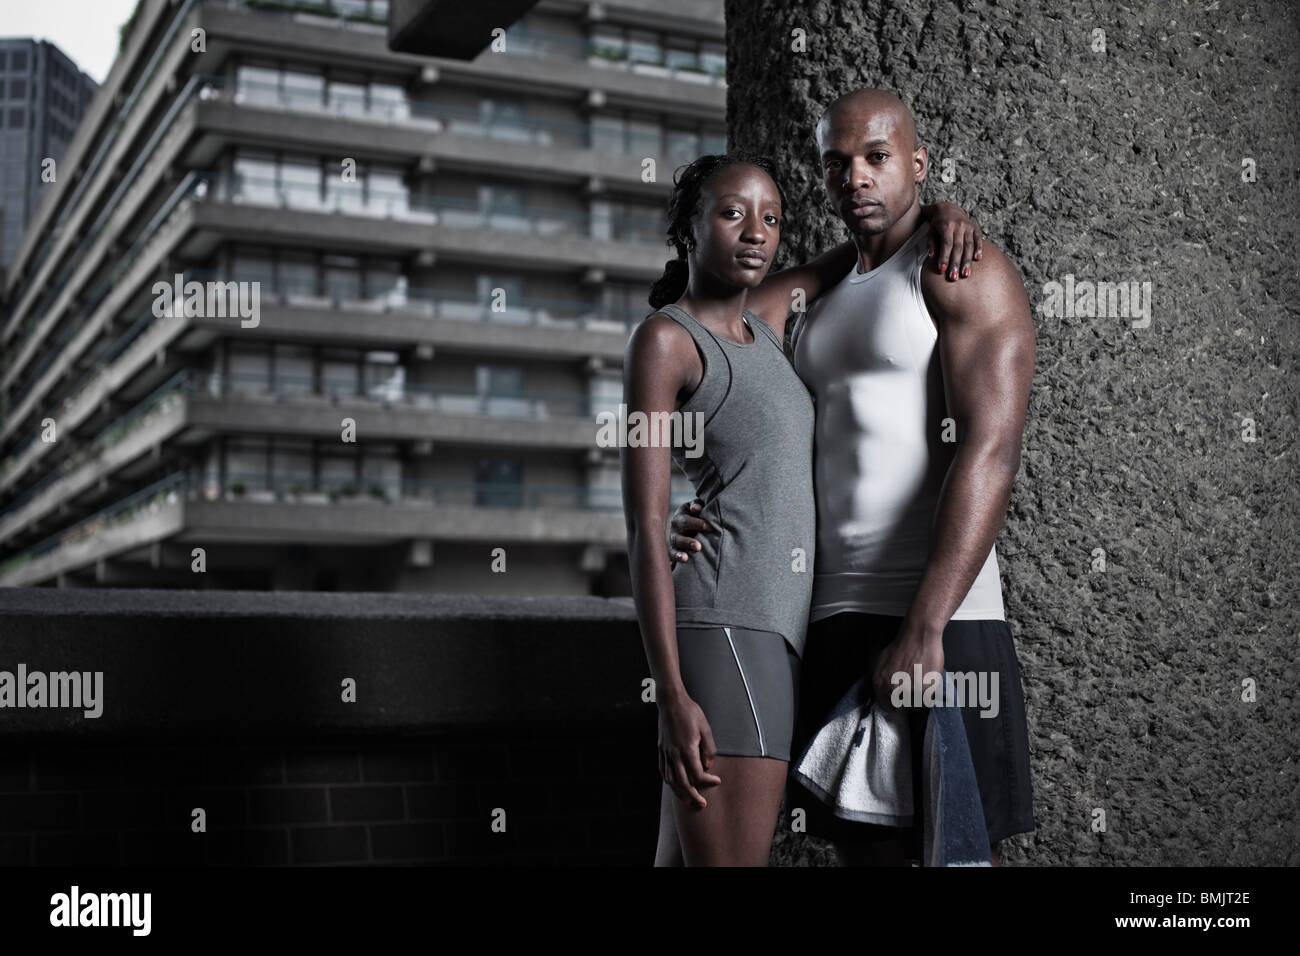 Portrait of athletic man and woman dressed in sportswear on city housing estate Stock Photo